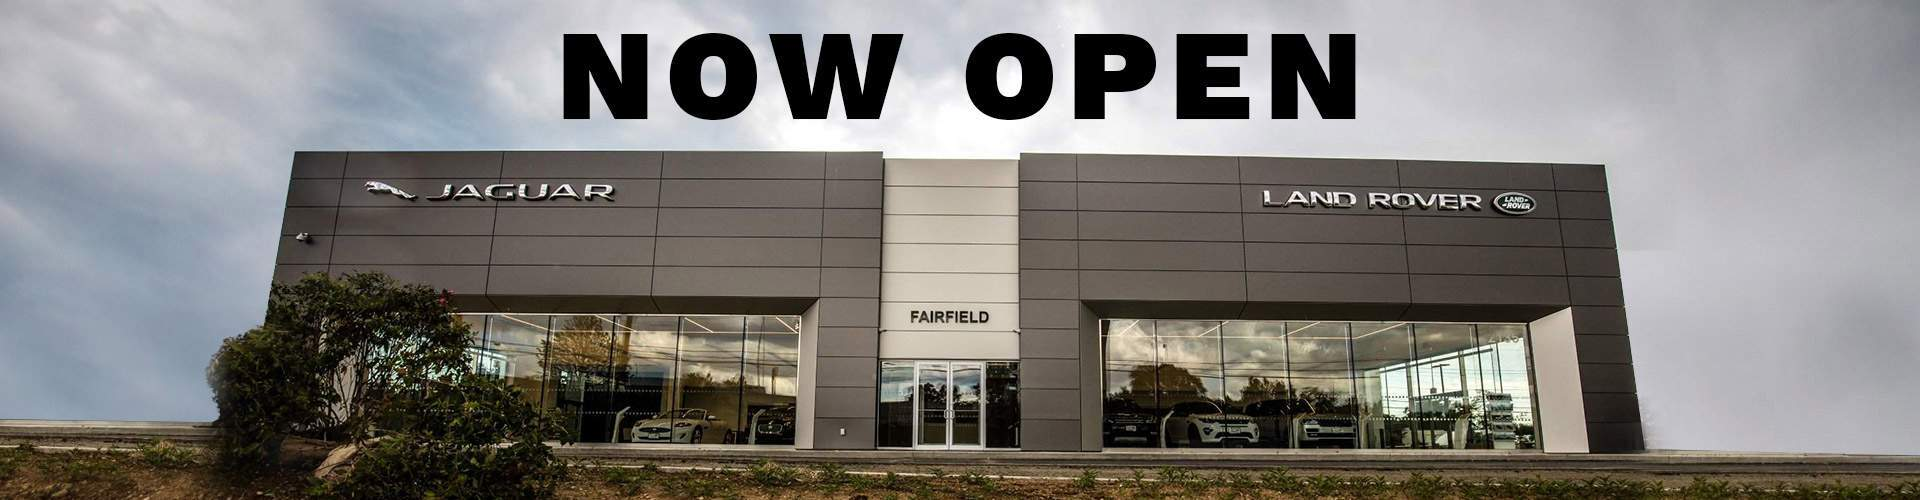 Jaguar Land Rover Fairfield Open Now